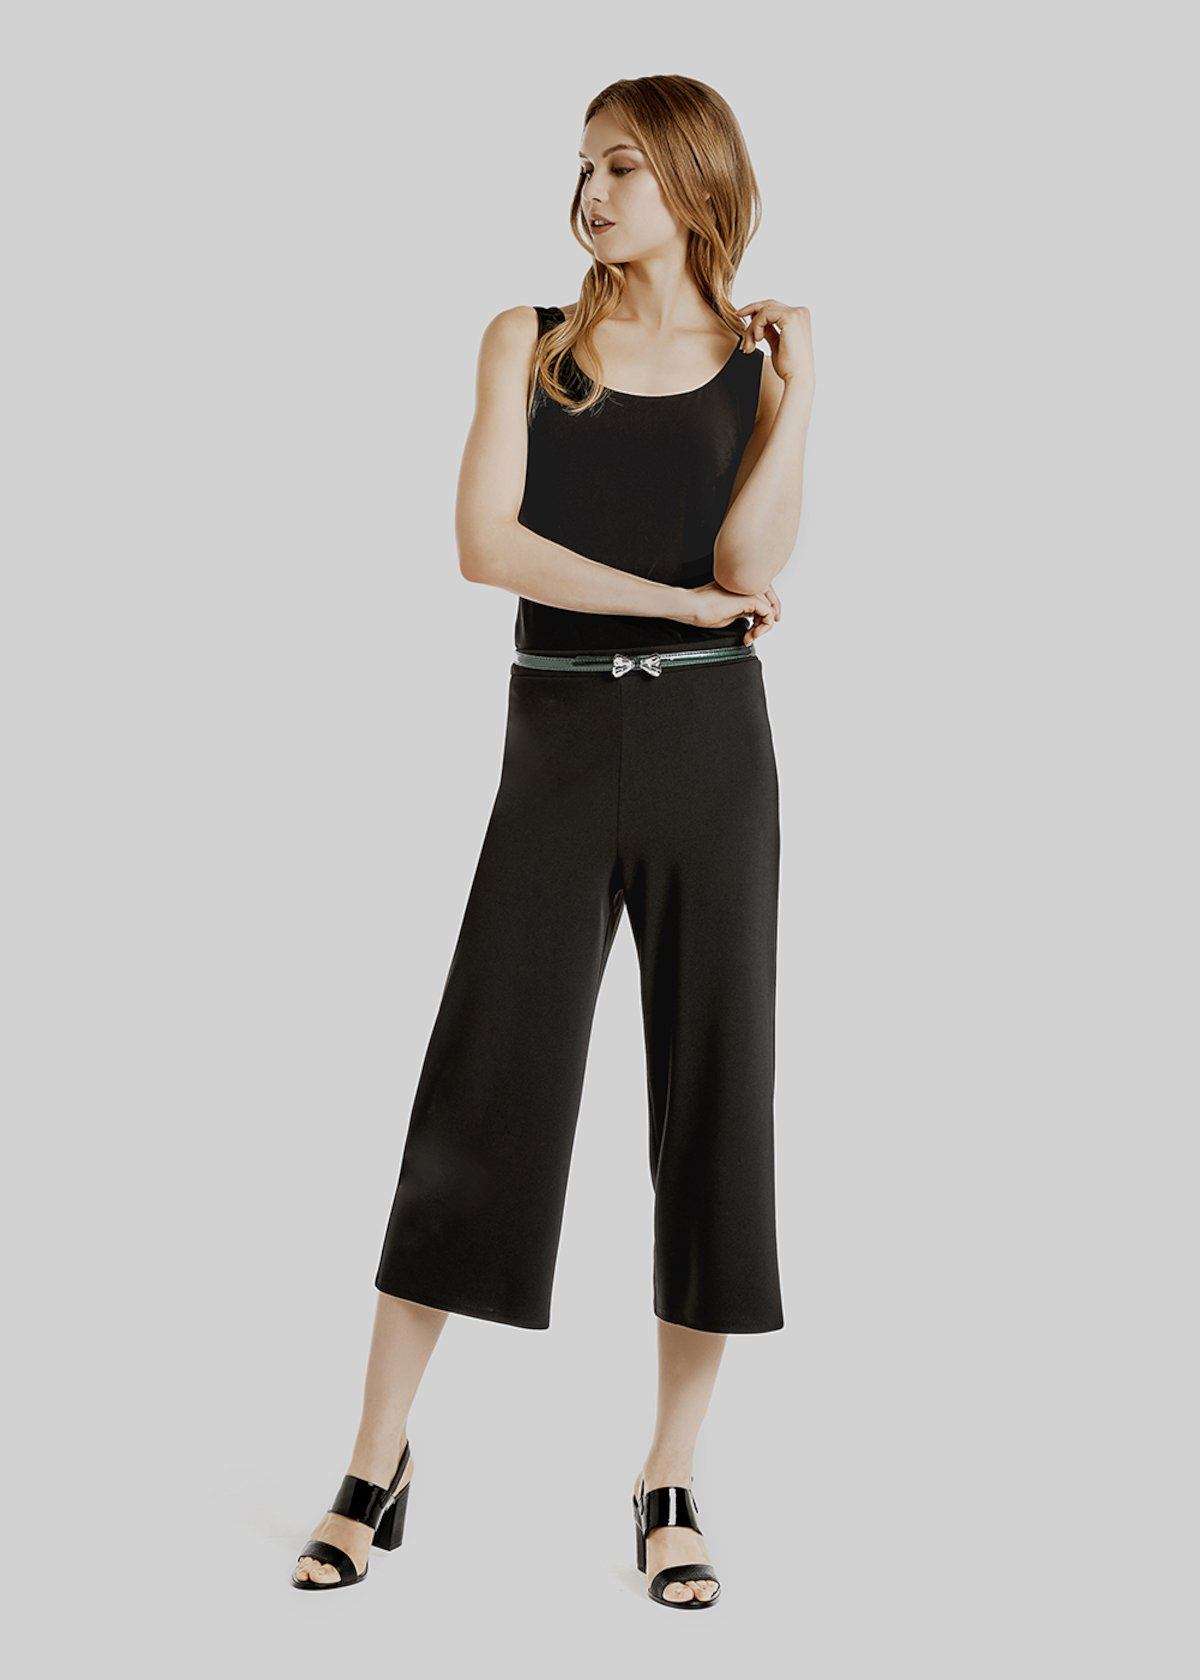 Paco short palazzo trousers